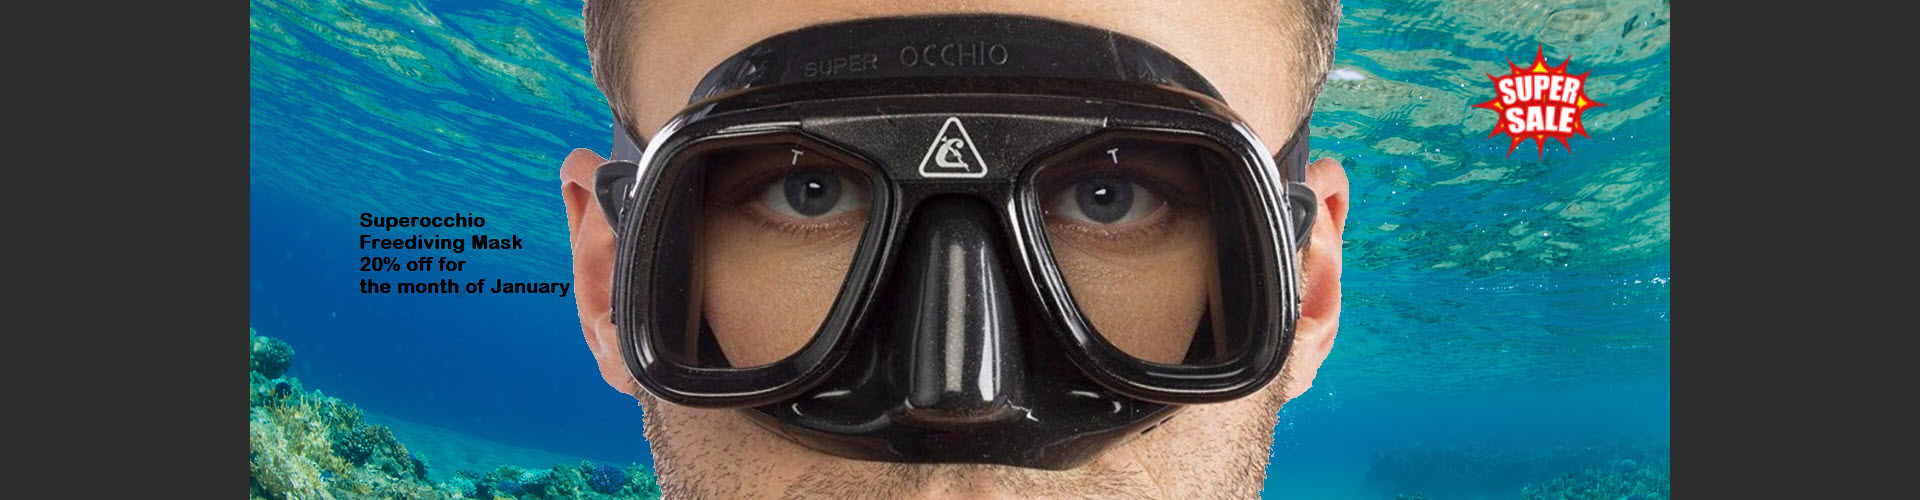 Superocchio Freediving Mask